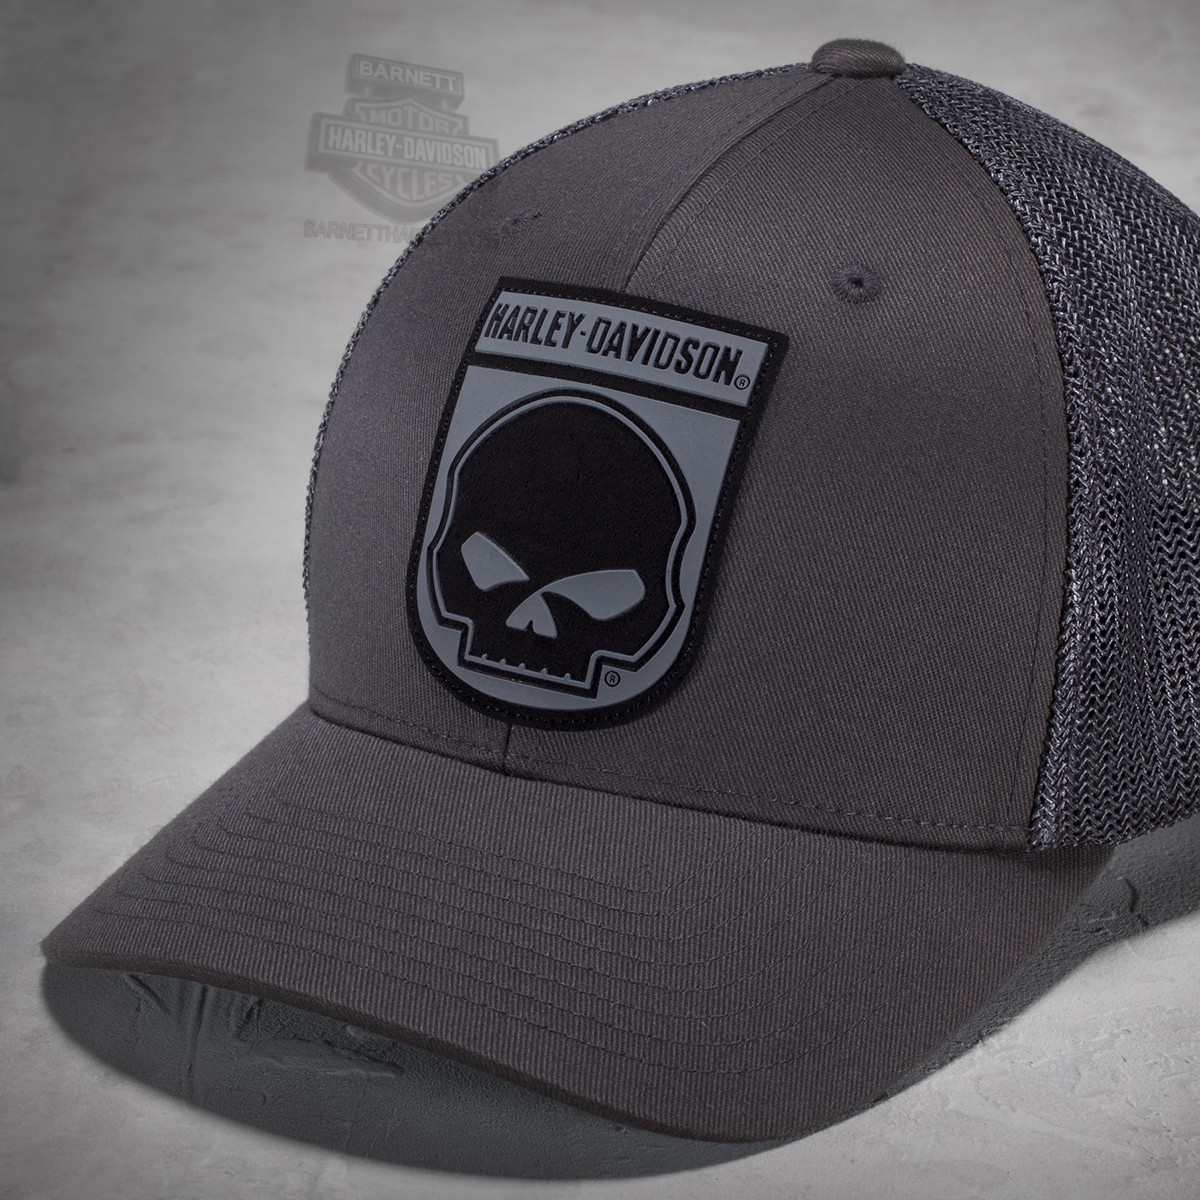 d9aed7d5f8ae4 ... Harley-Davidson® Mens Rubber Willie G Skull Mesh Back Flexfit® Black  Poly Blend Stretch Fit Baseball Cap. Tap to expand